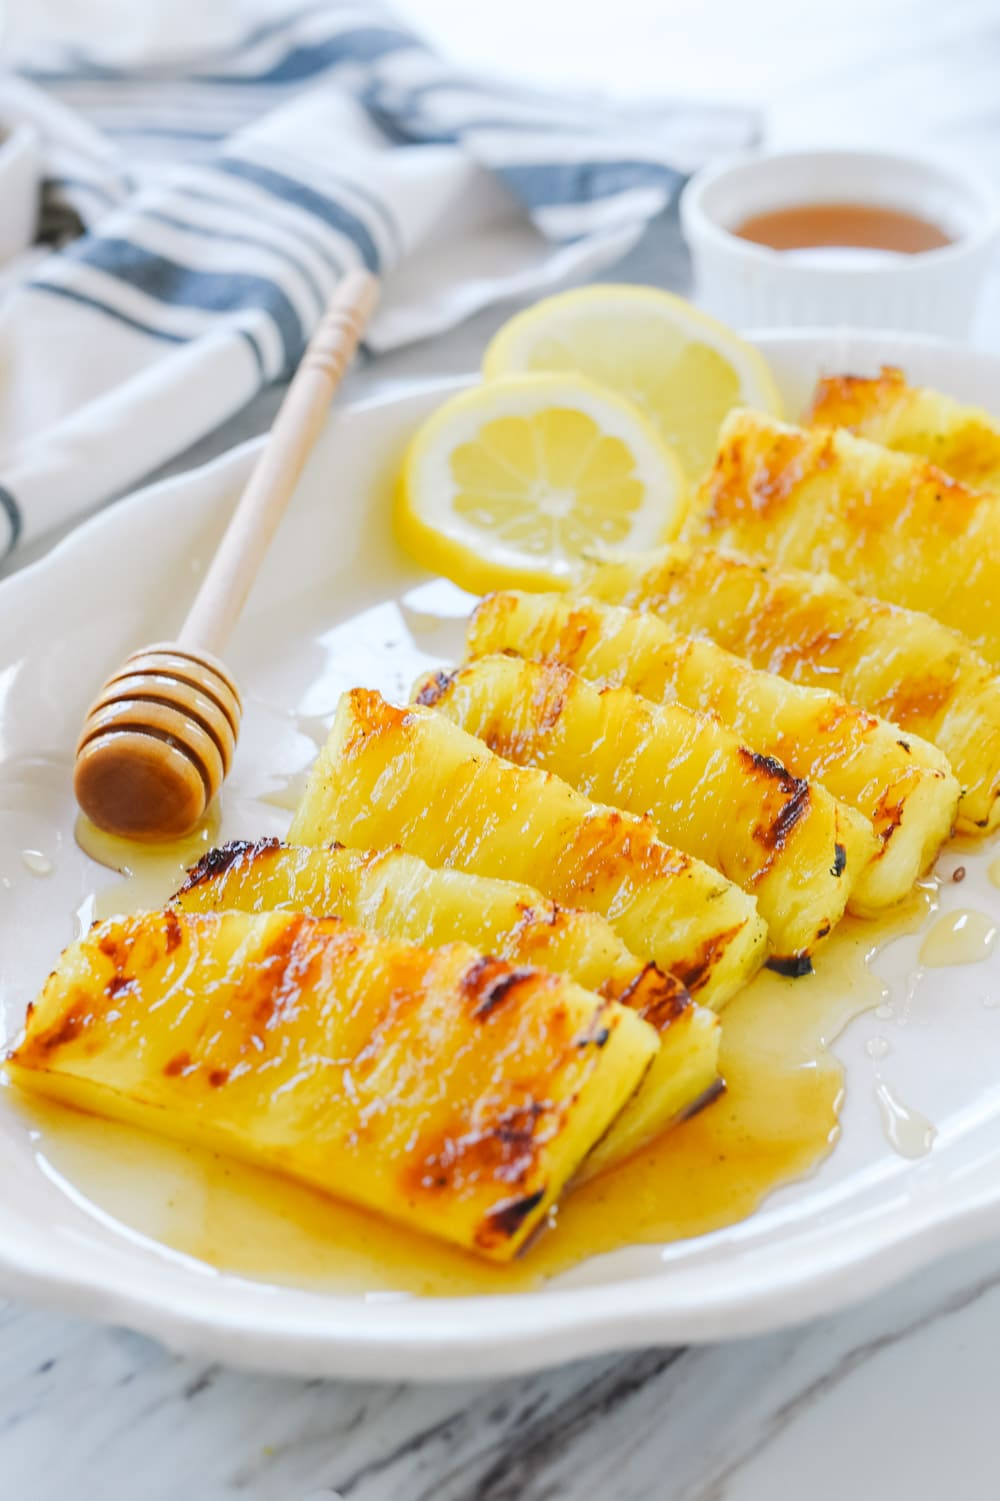 Pineapple with honey and lemon